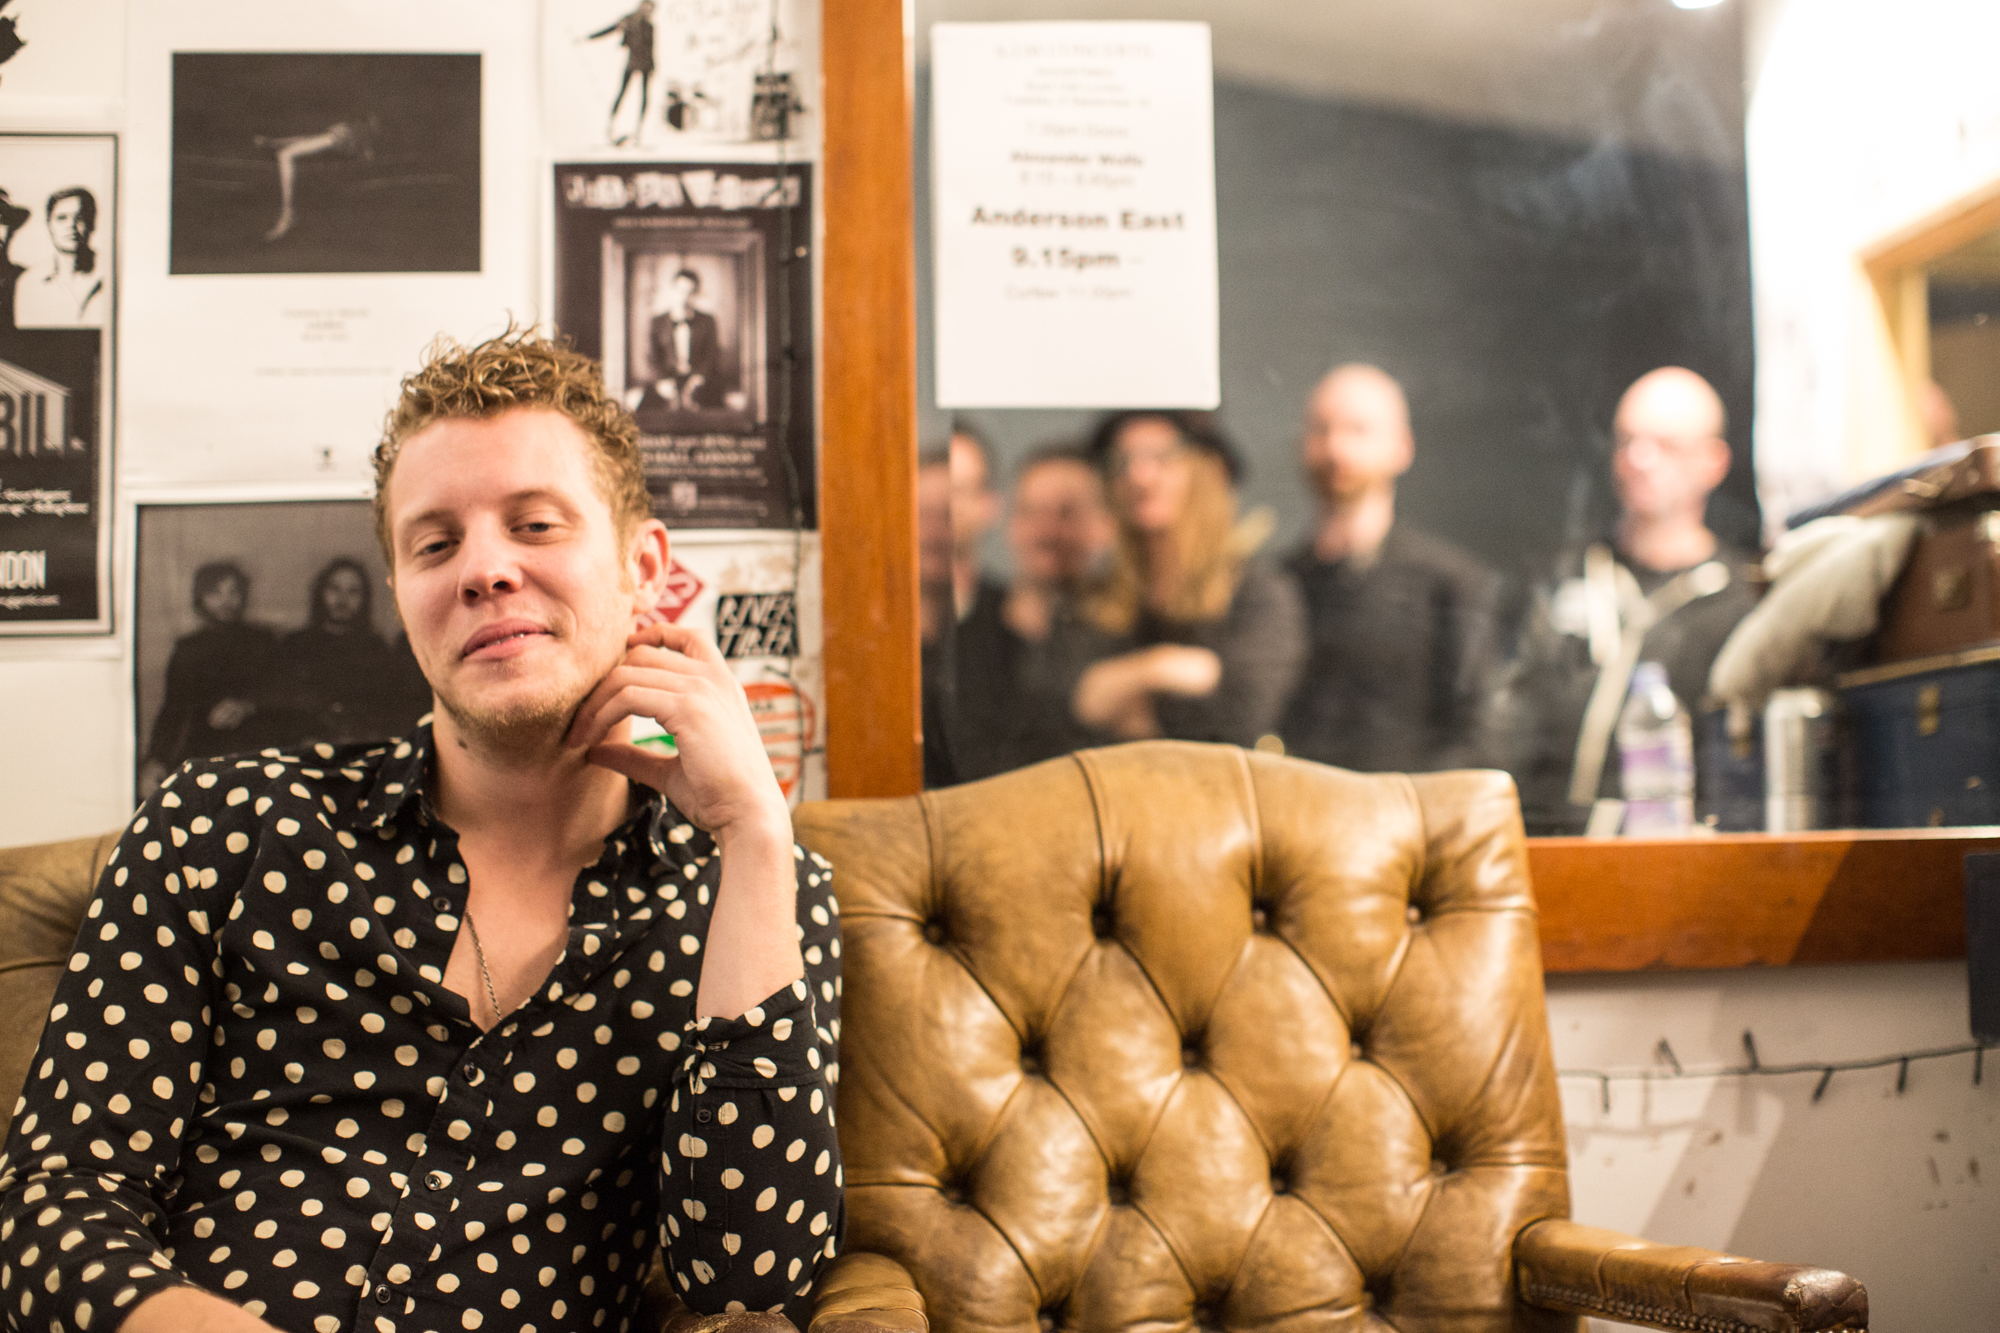 Anderson East at Bush Hall live Alabama blues newcomer September tour